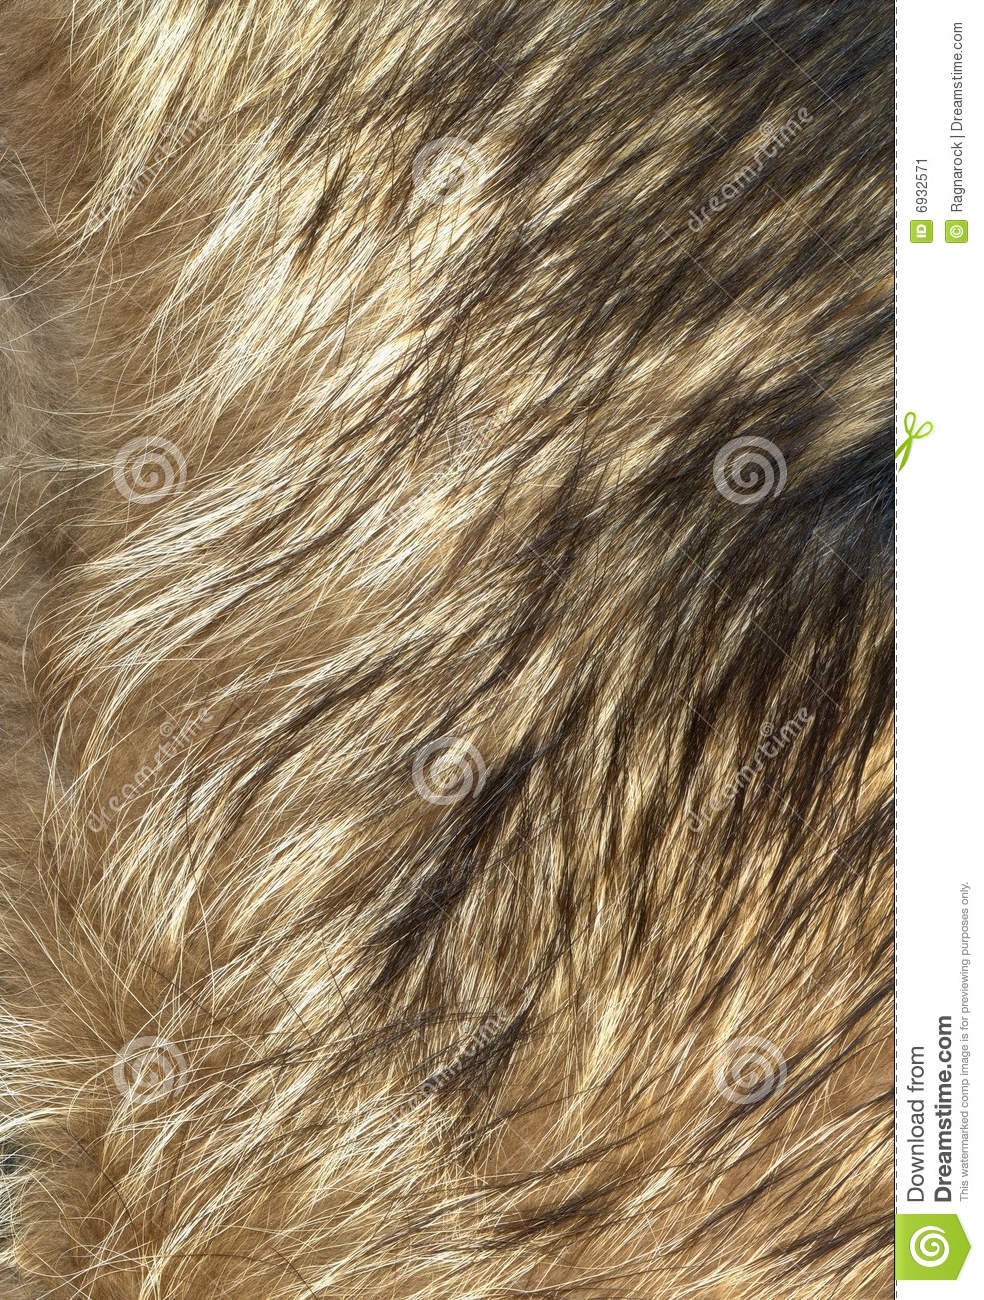 Wolf Fur Texture To Background Stock Image - Image: 6932571